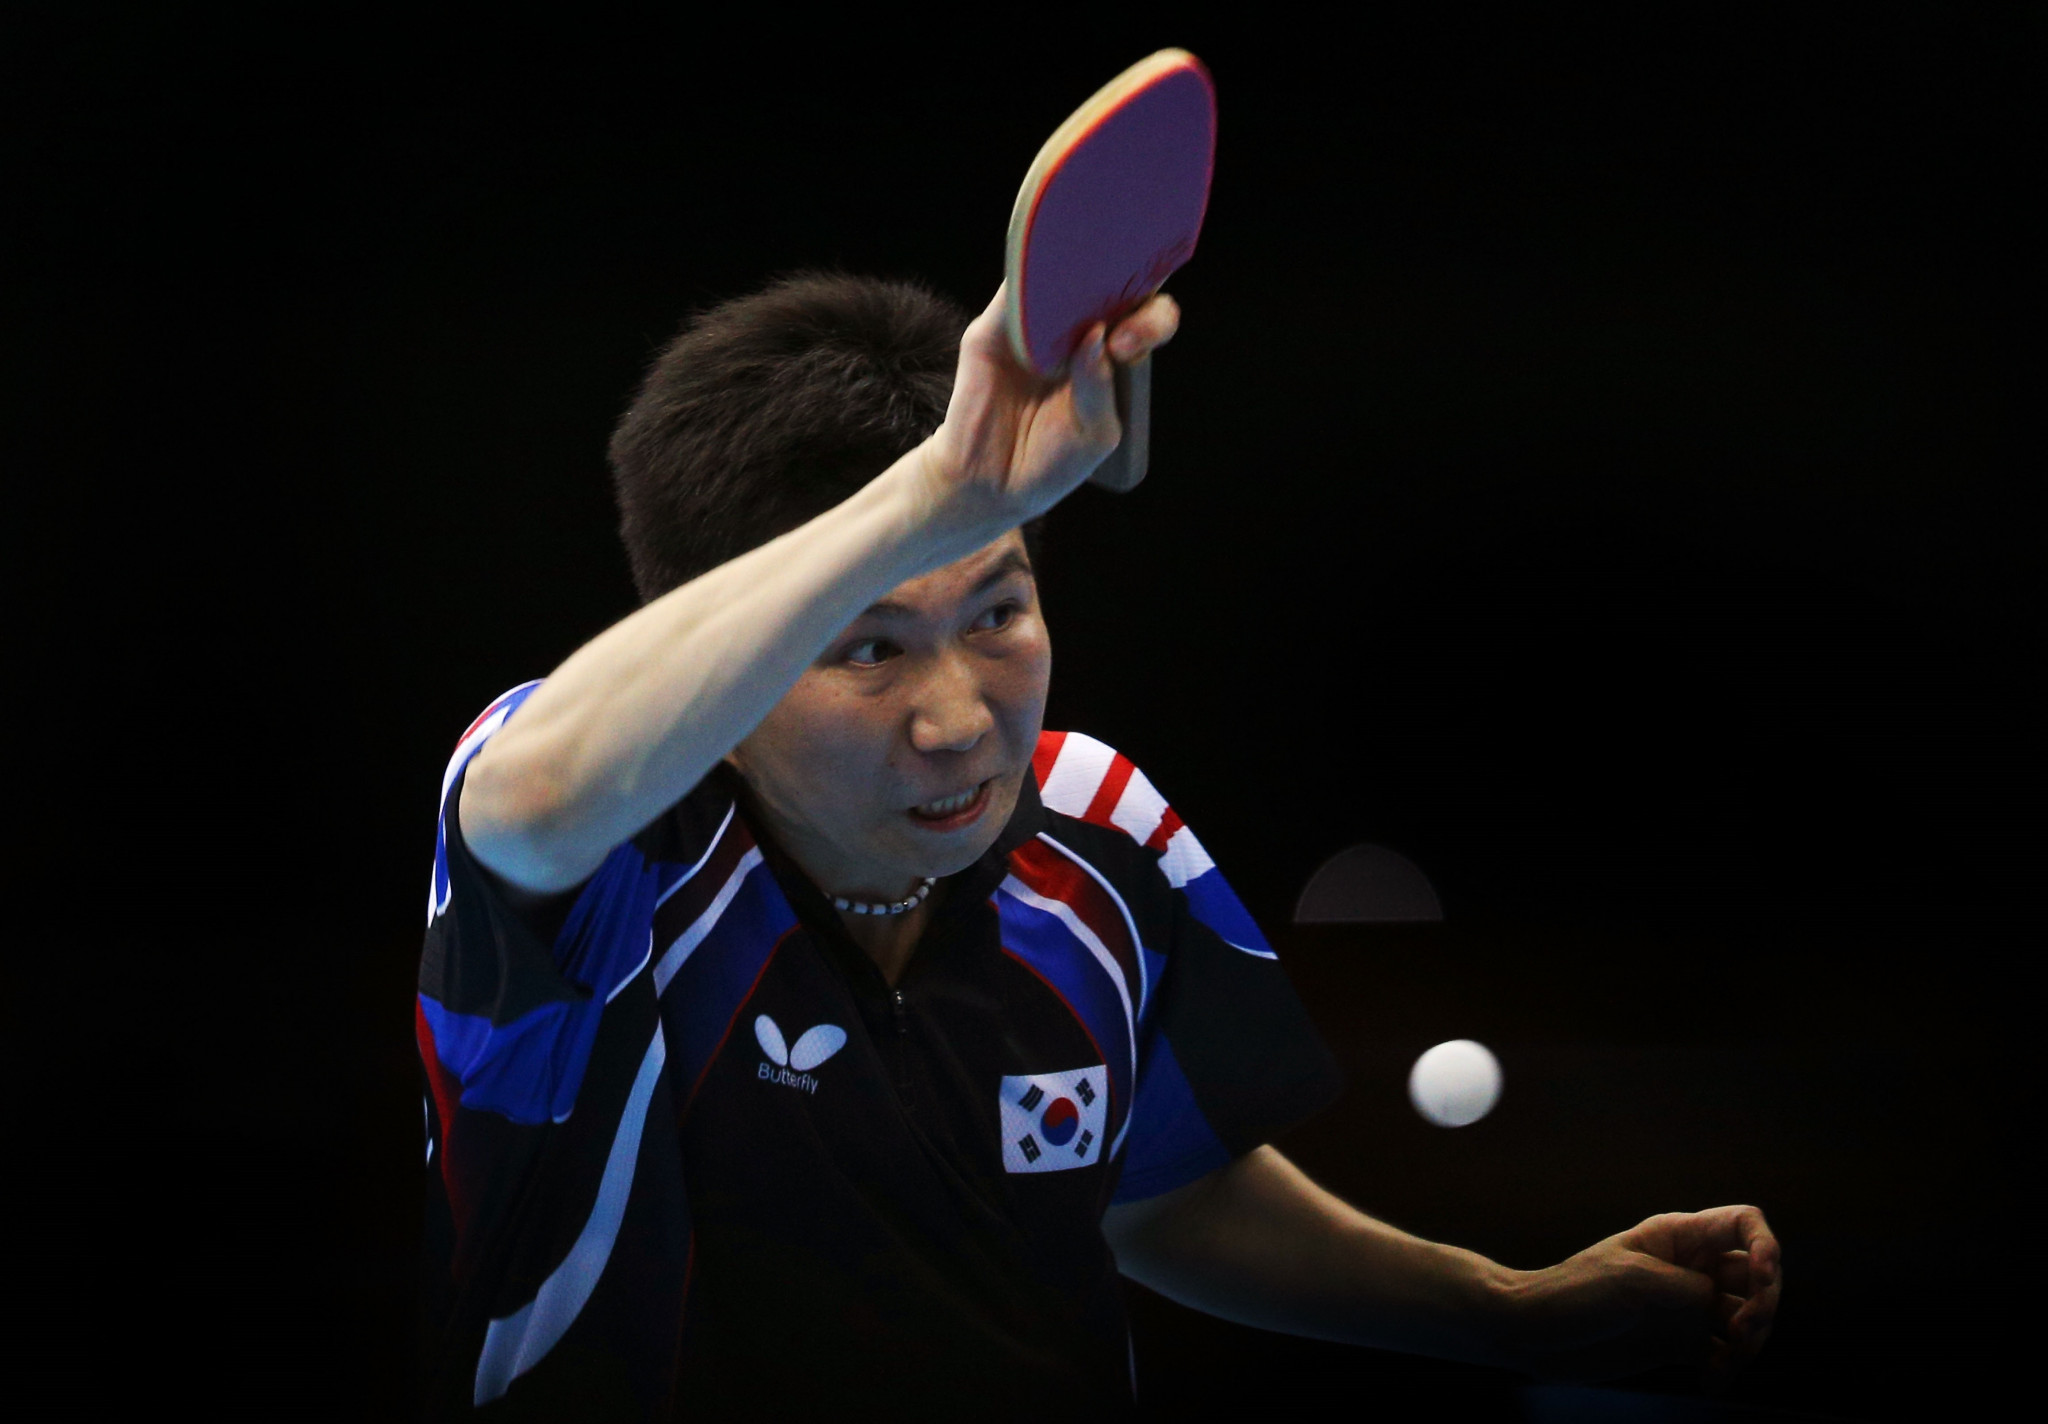 Ryu among participants as two Koreas, China and Japan celebrate Olympic Day with friendly table tennis event